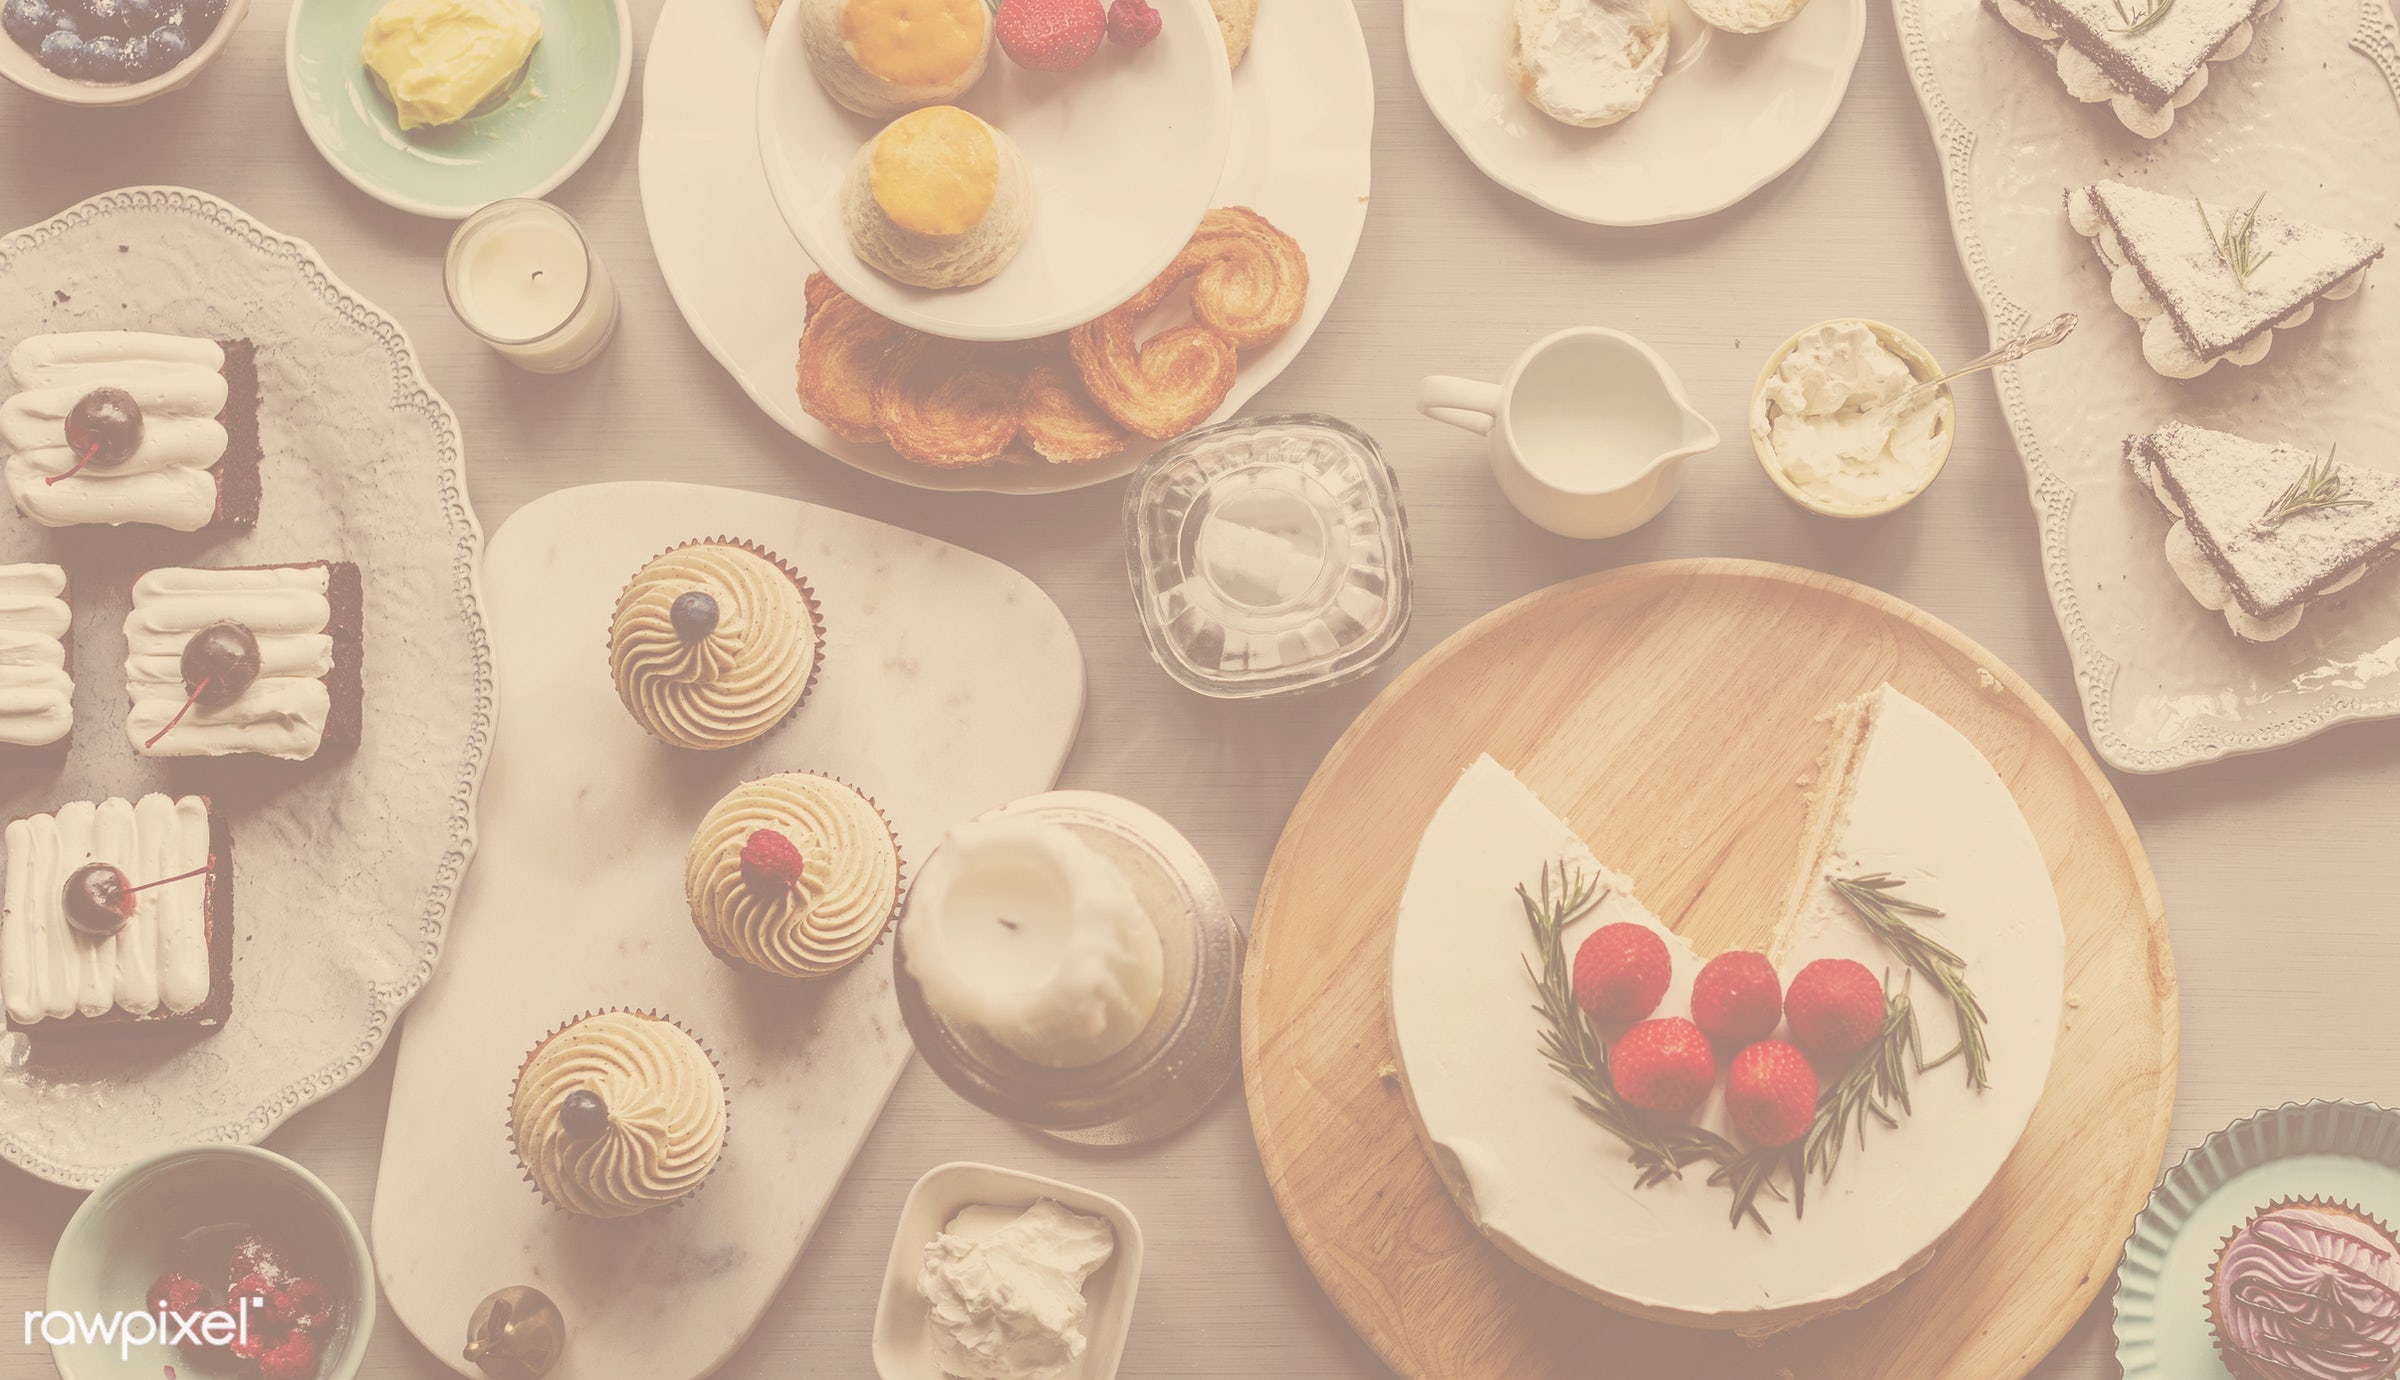 tea time, nobody, birthday, relax, occasion, tea, party, bakery, celebrate, dessert, sweets, delicious, snack, tasty, cakes...